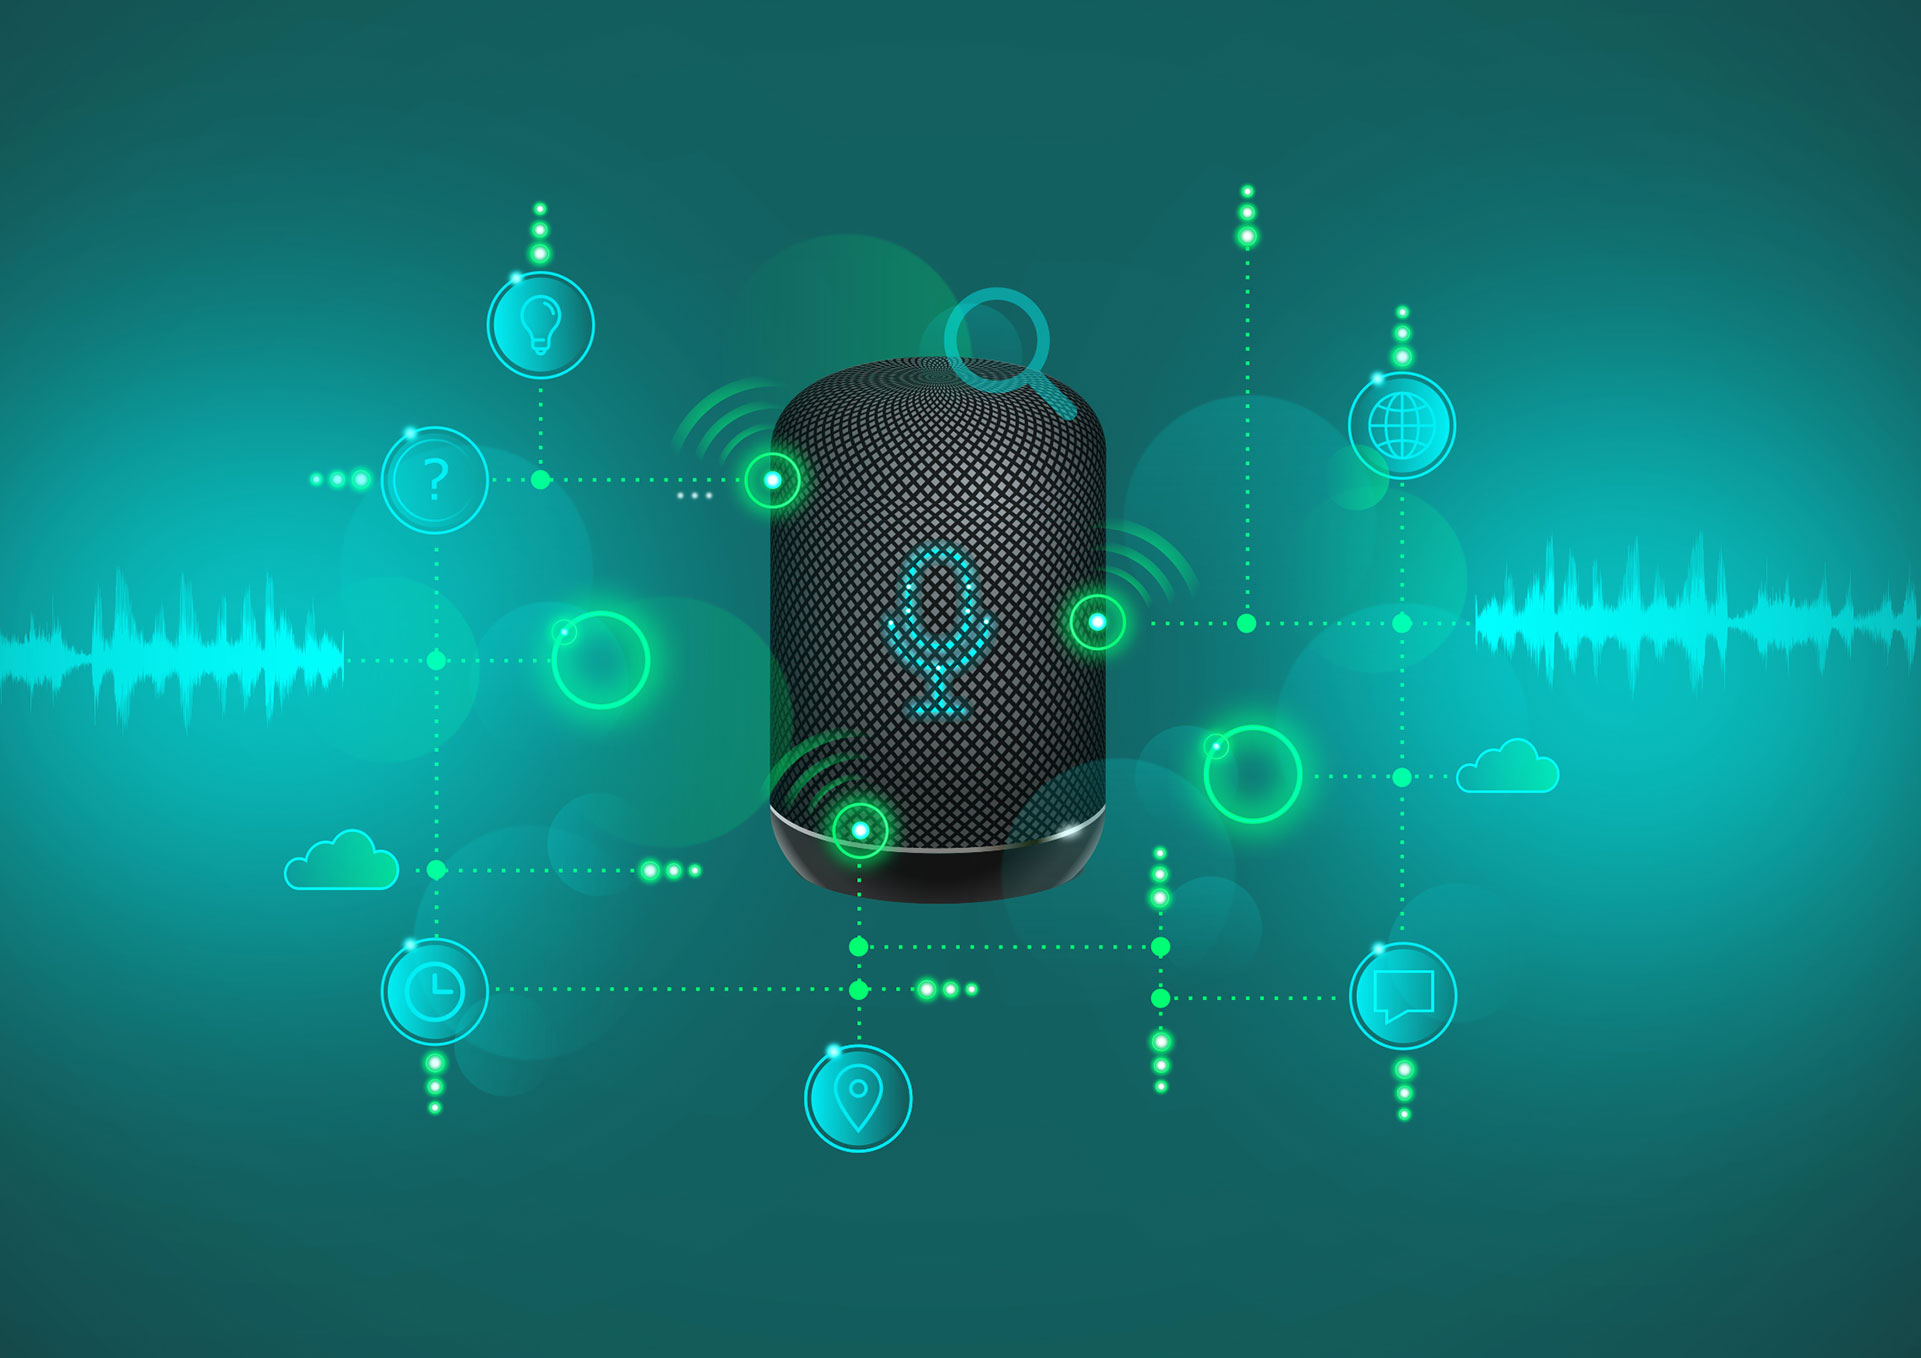 Communicative and social consequences of interactions with voice assistants, Computers in Human Behavior, November 2020